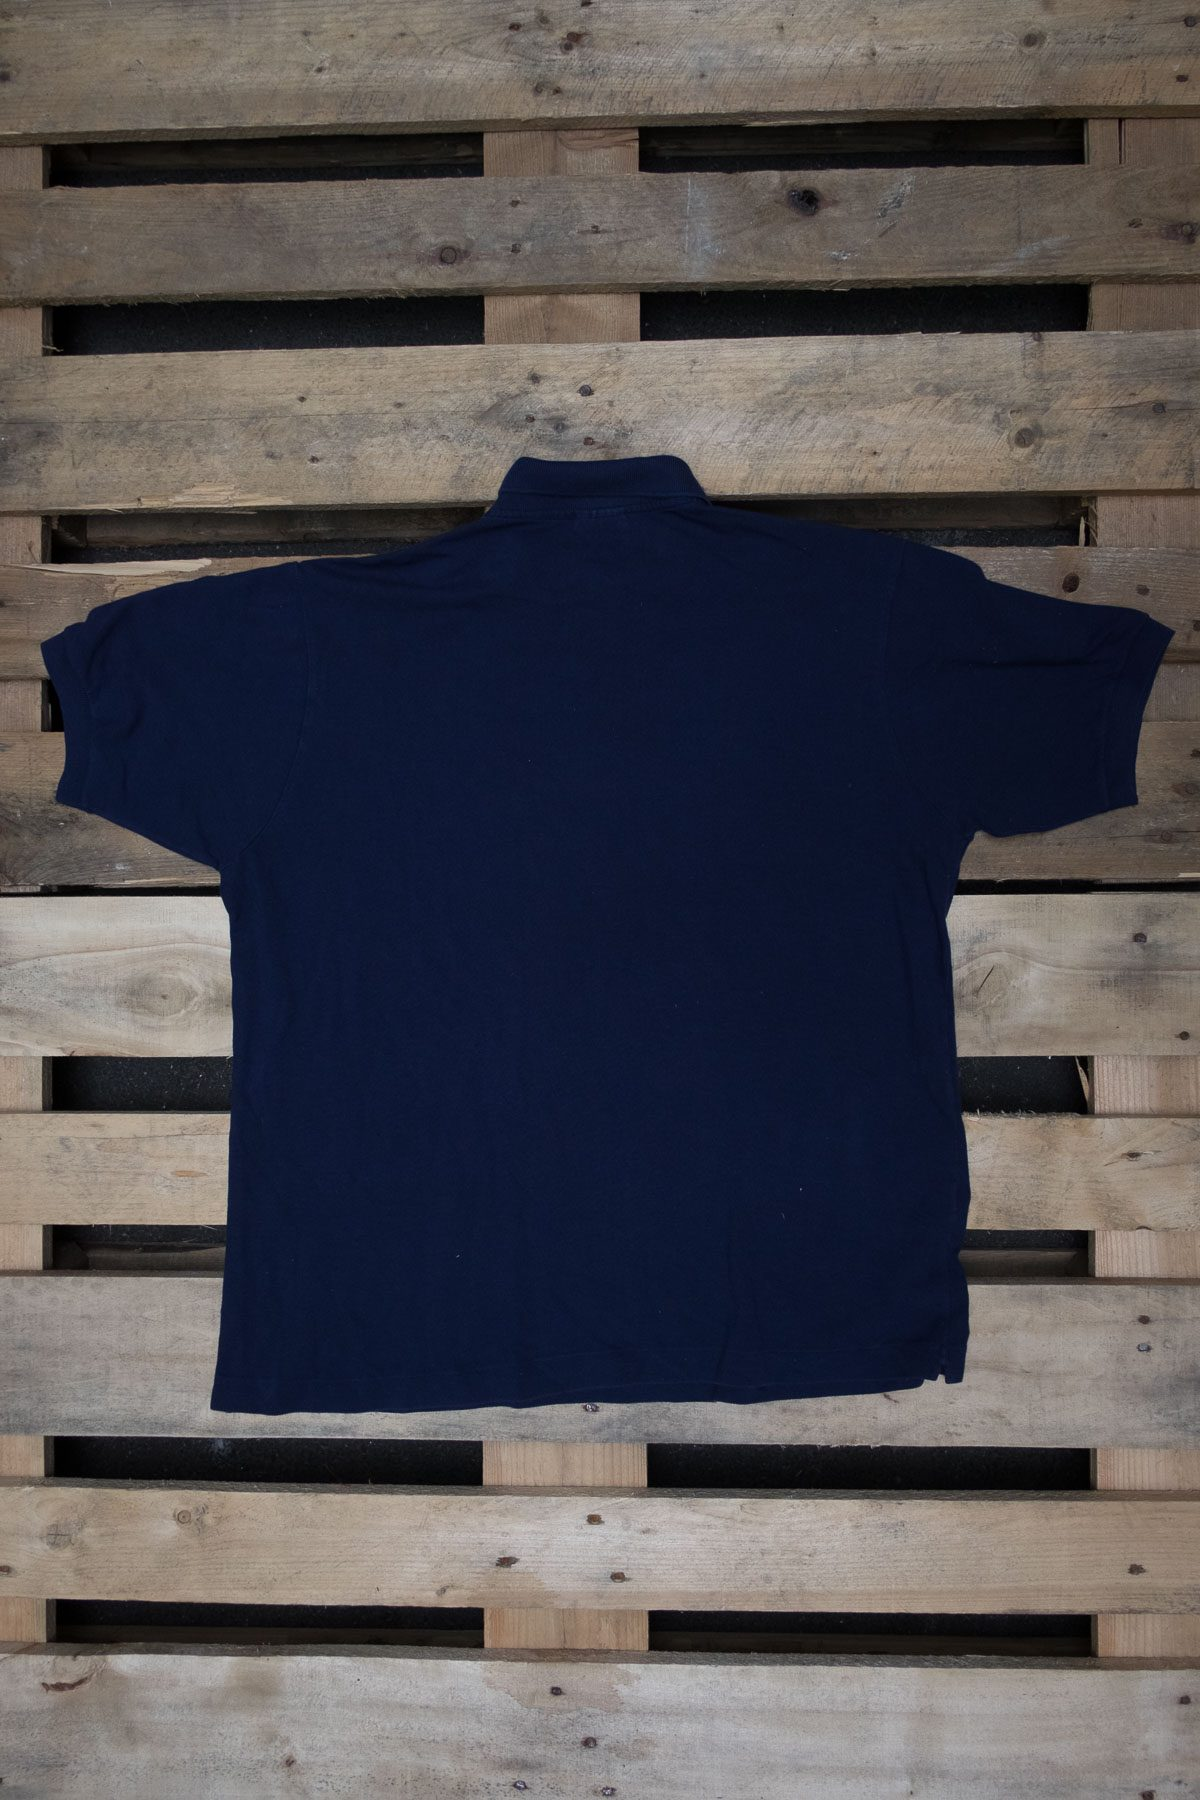 Lacoste T-SHIRT POLO VINTAGE Blue